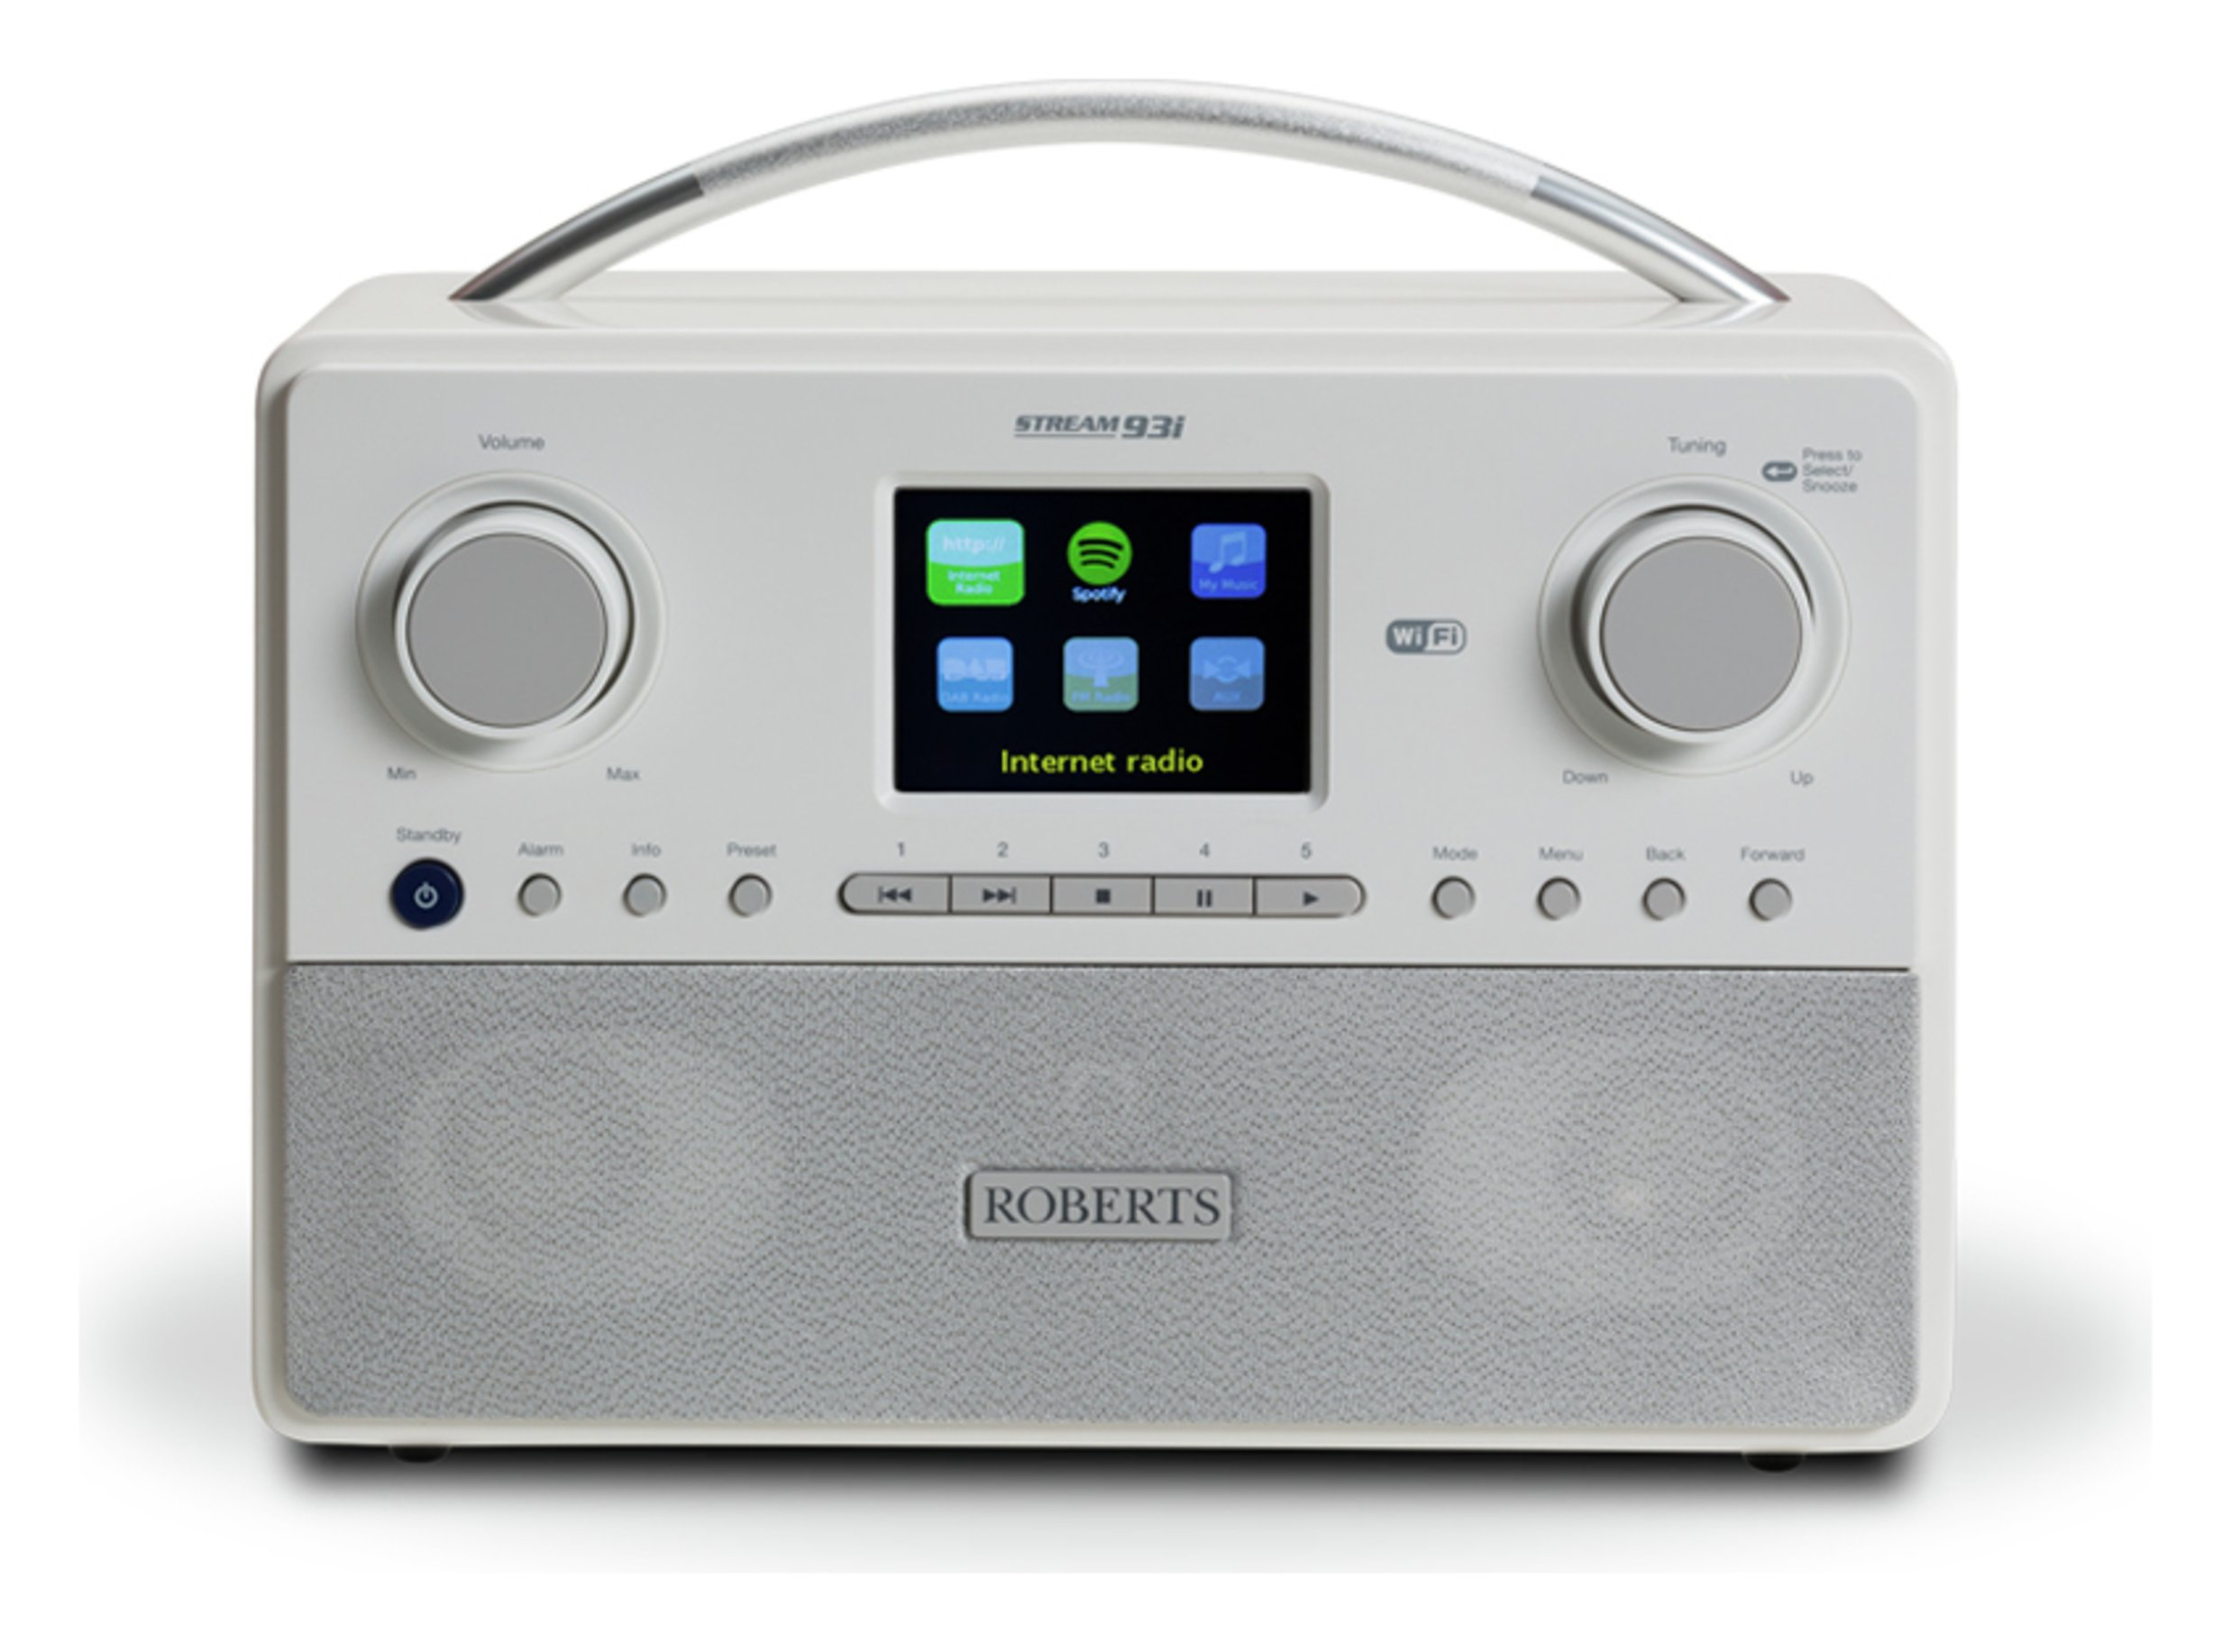 roberts-radio-stream-93i-smart-radio-white